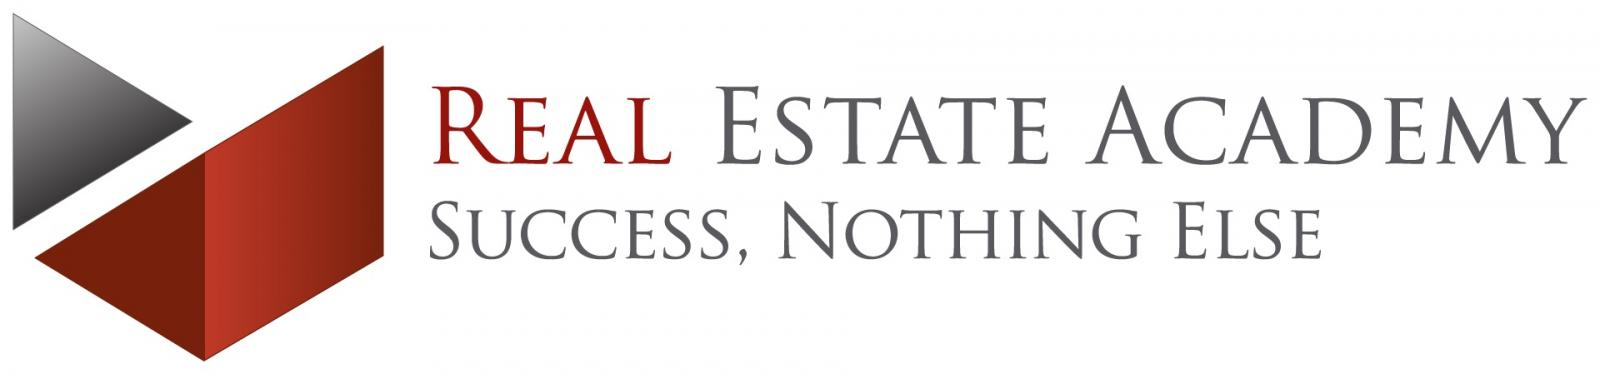 Real Estate Academy